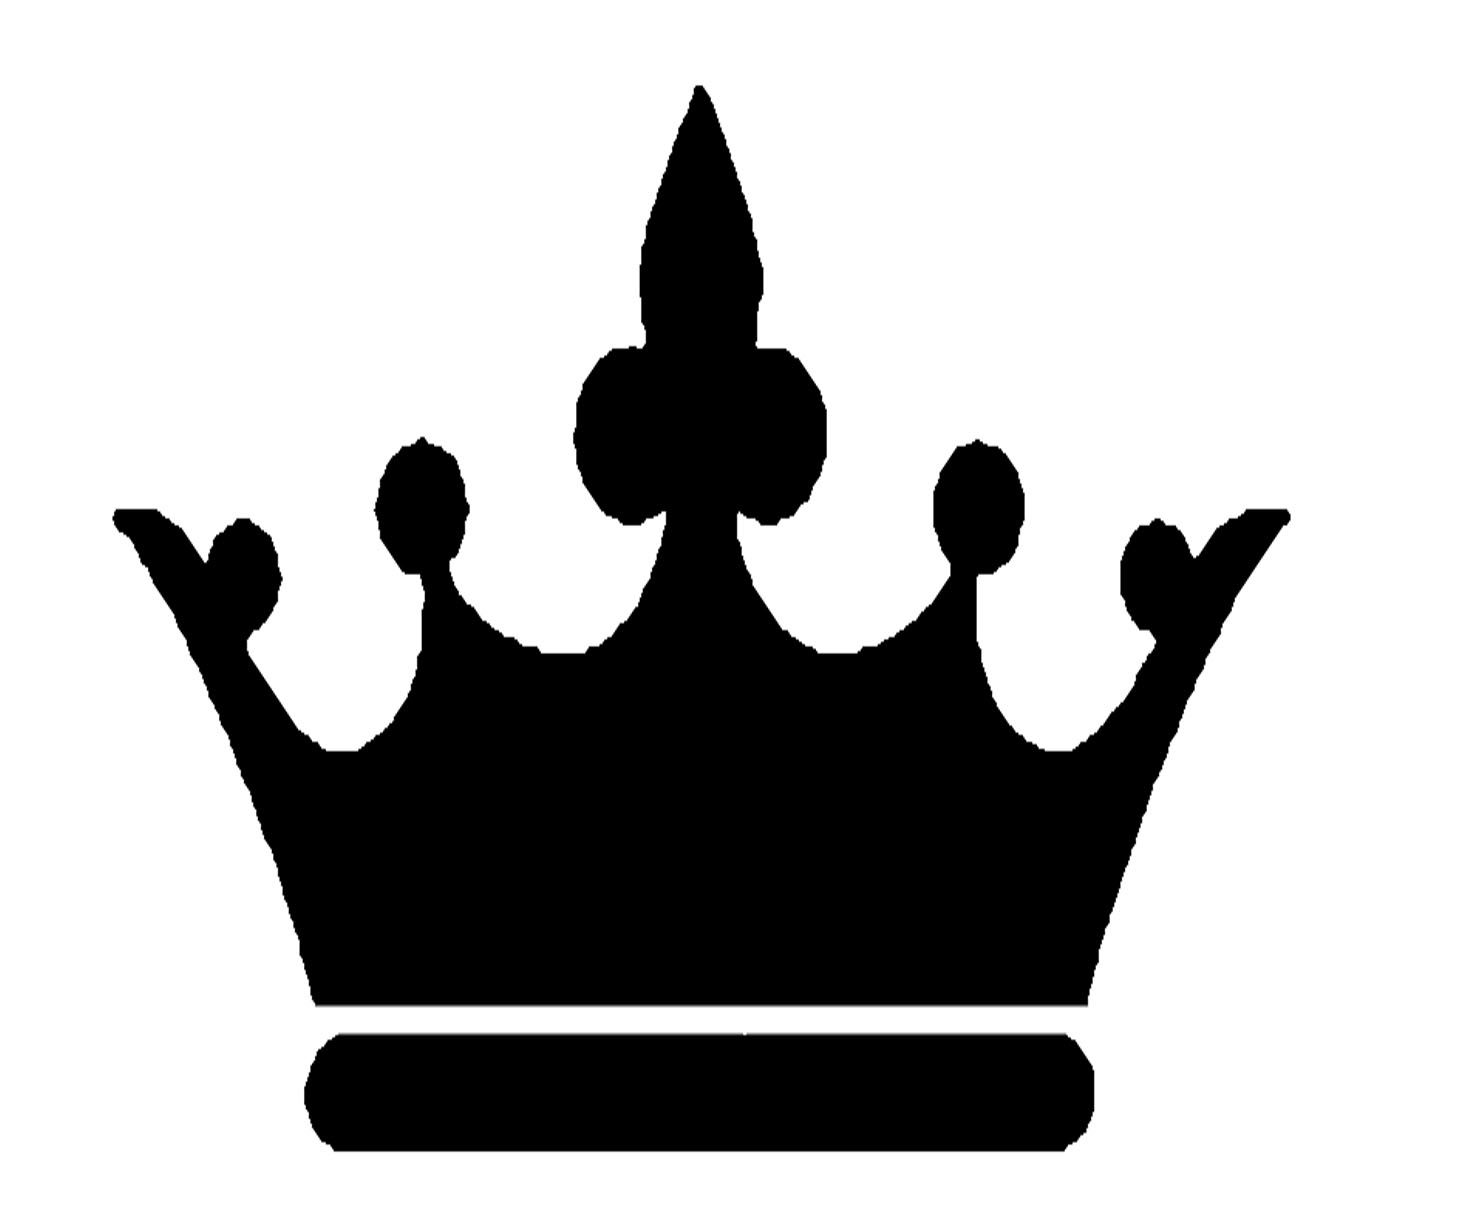 king crown silhouette at getdrawings com free for personal use rh getdrawings com king crown clipart png king crown png clipart